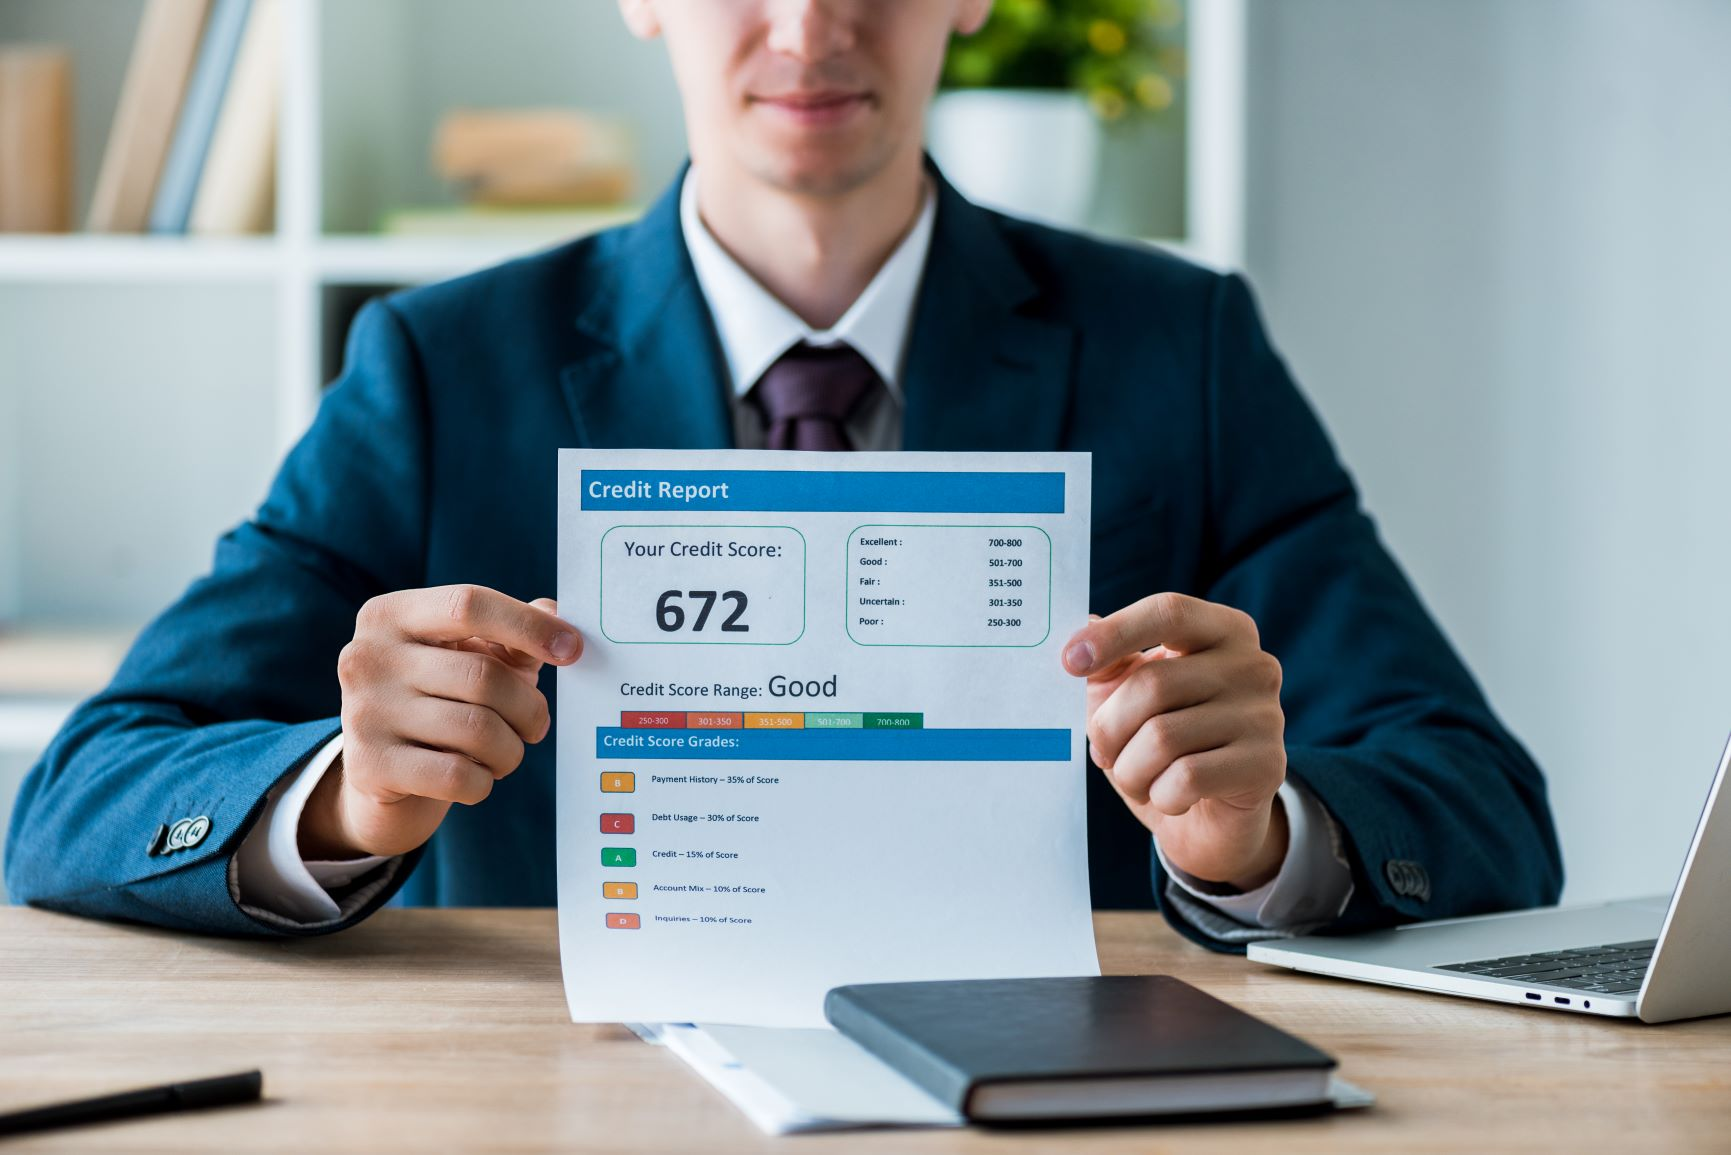 man in suit holding up credit report